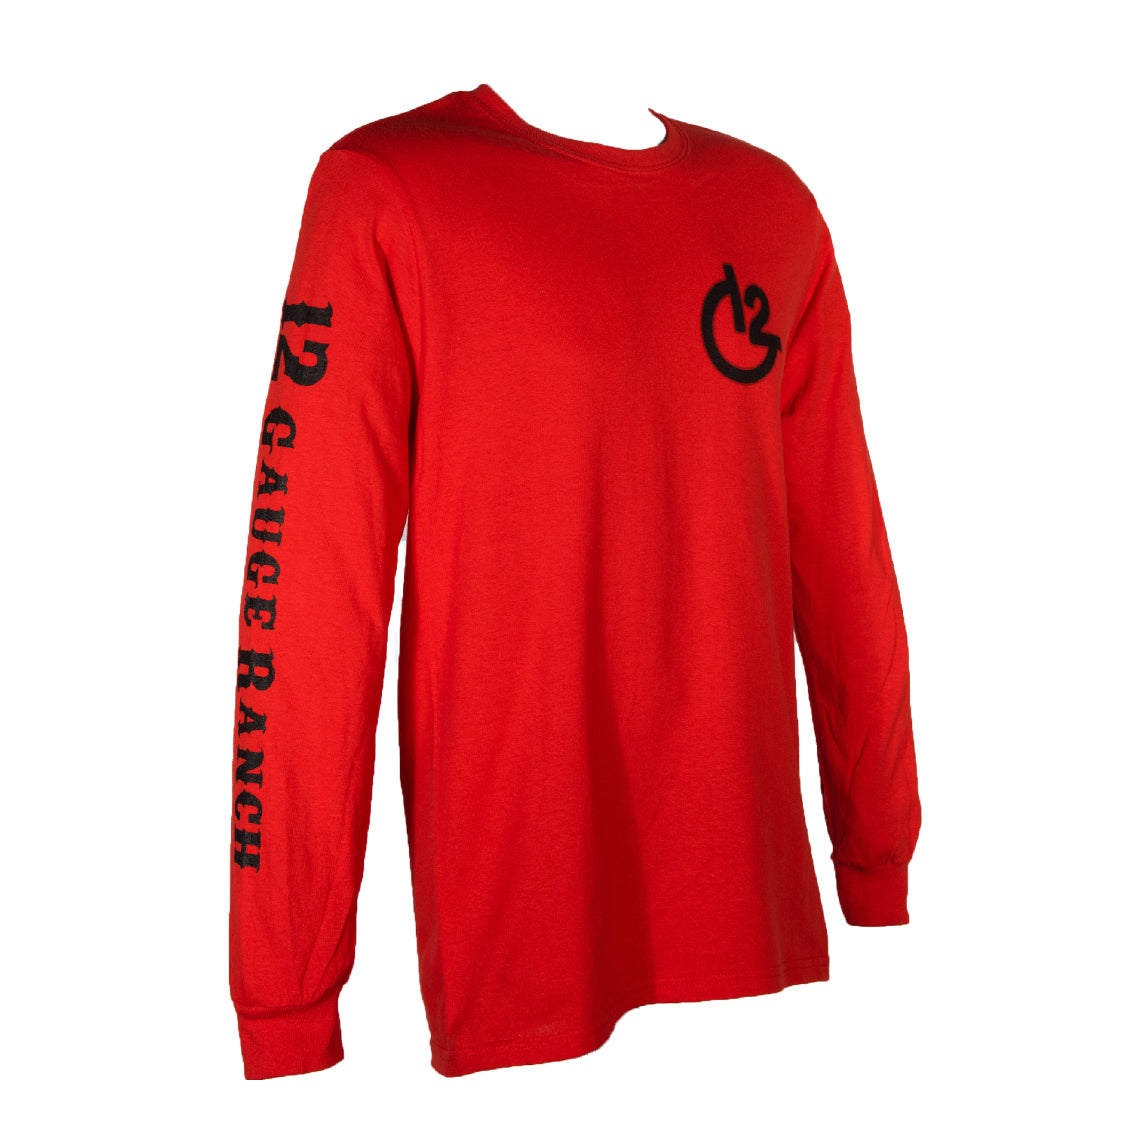 Red 12 Gauge Ranch Long Sleeve Shirt (12GARDLS), Apparel, 12 Gauge Ranch, 12 Gauge Ranch Ranch  12 Gauge Ranch